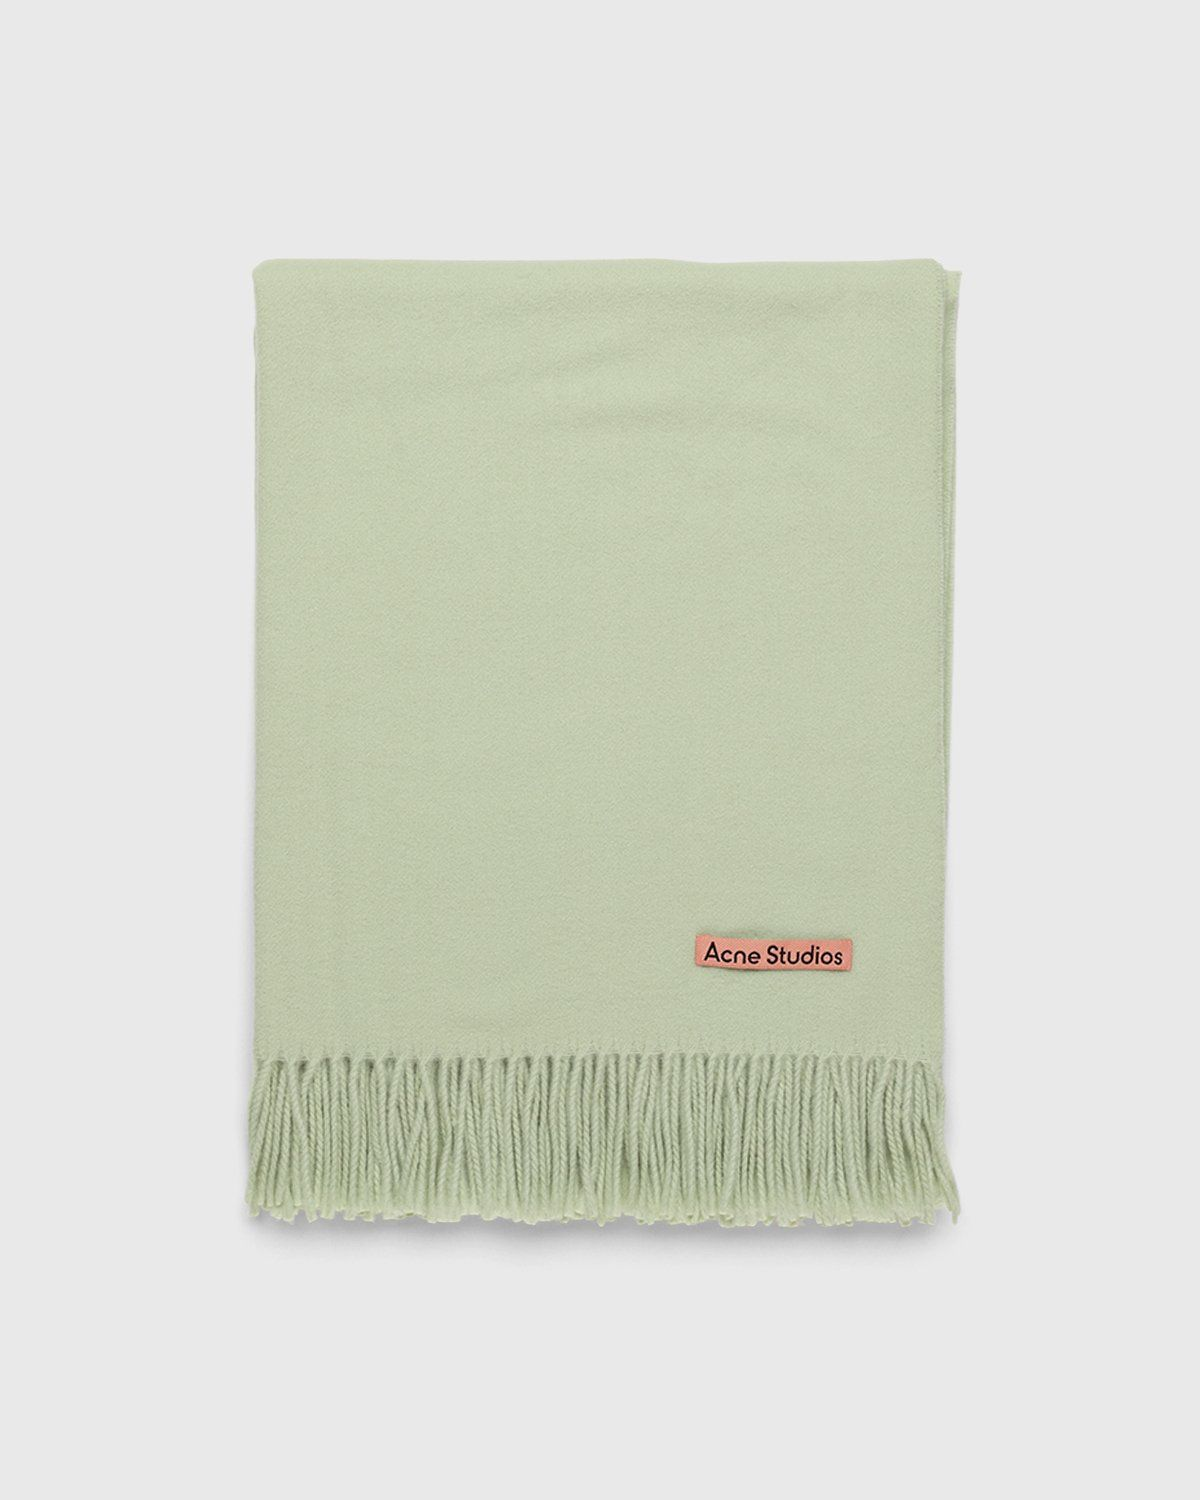 Acne Studios – Canada New Scarf Pale Green - Image 2